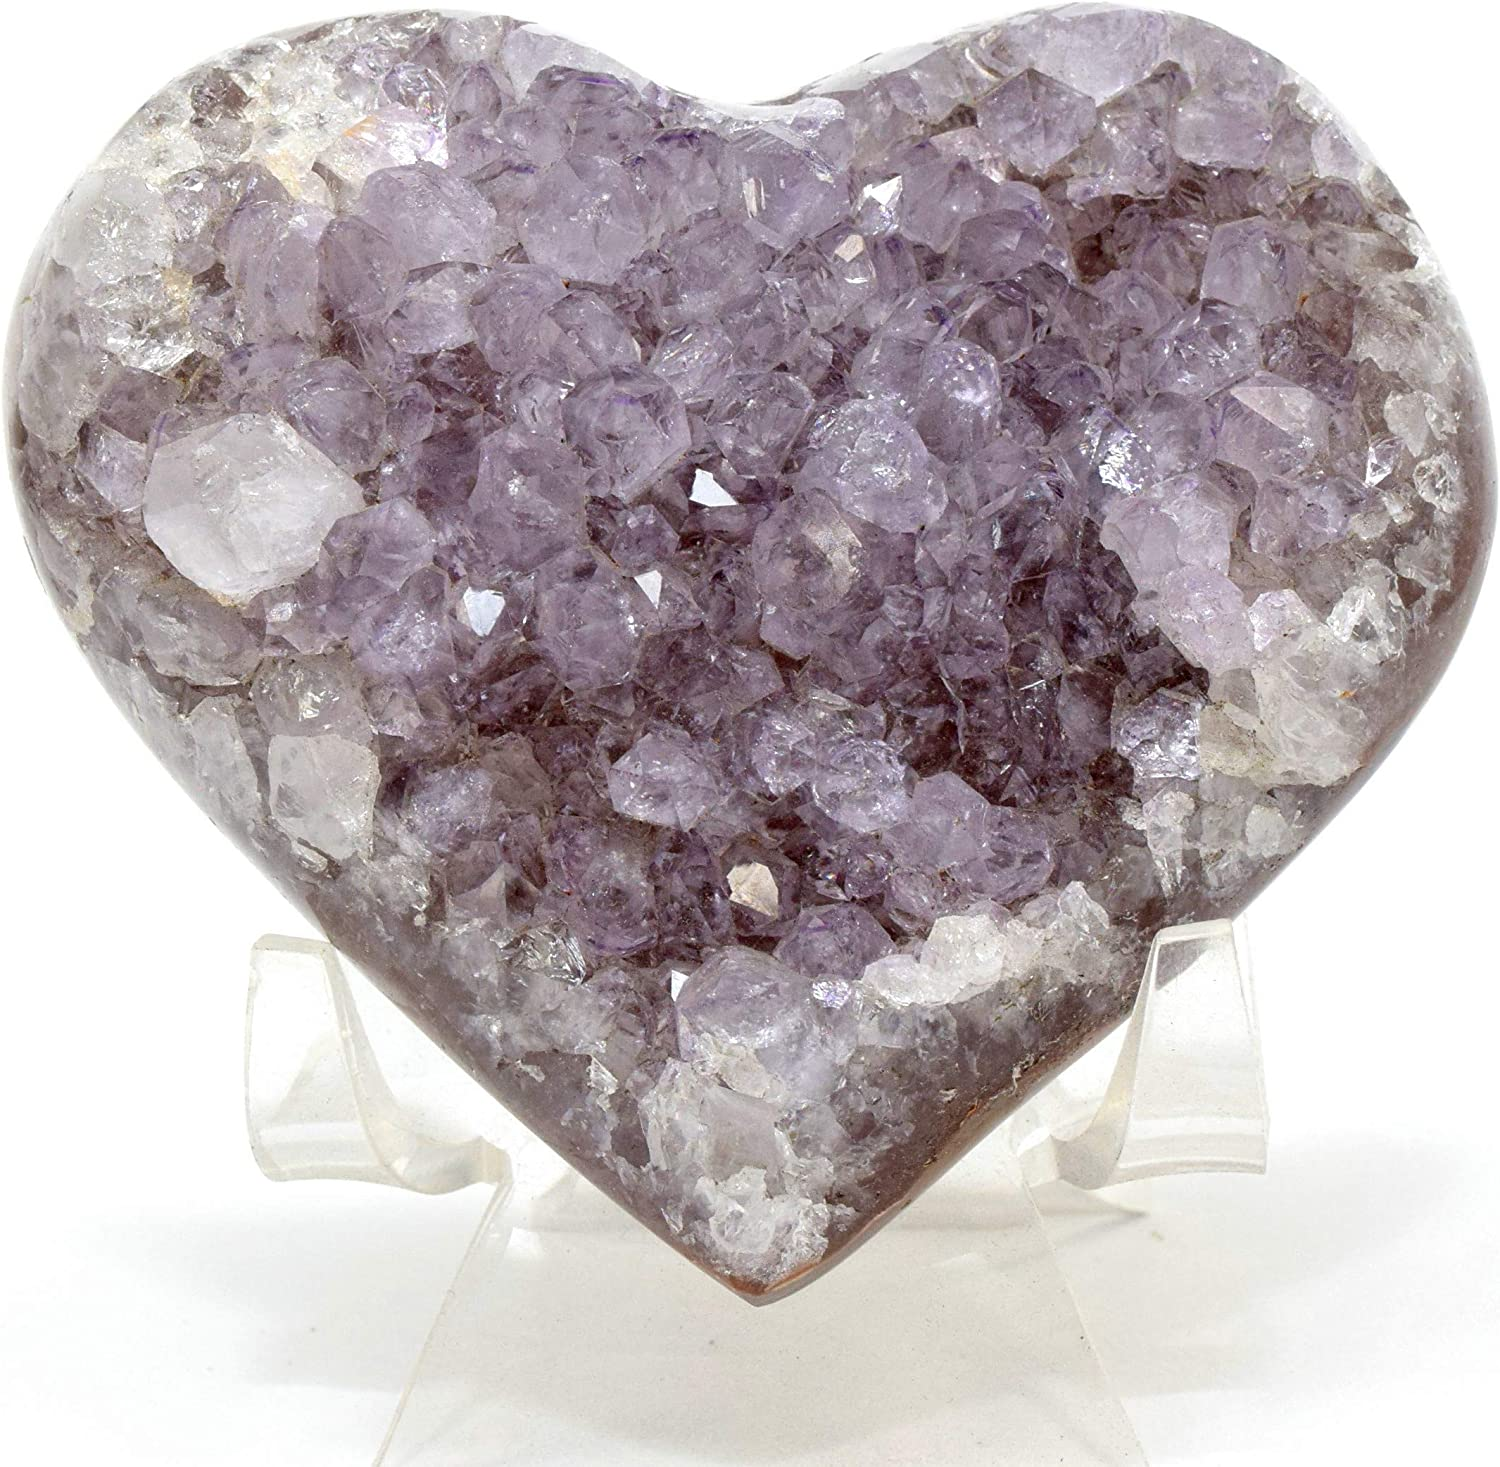 CRYSTAL STYLE RING DISPLAY HEART WITH GEM CUT FOR BEAUTY